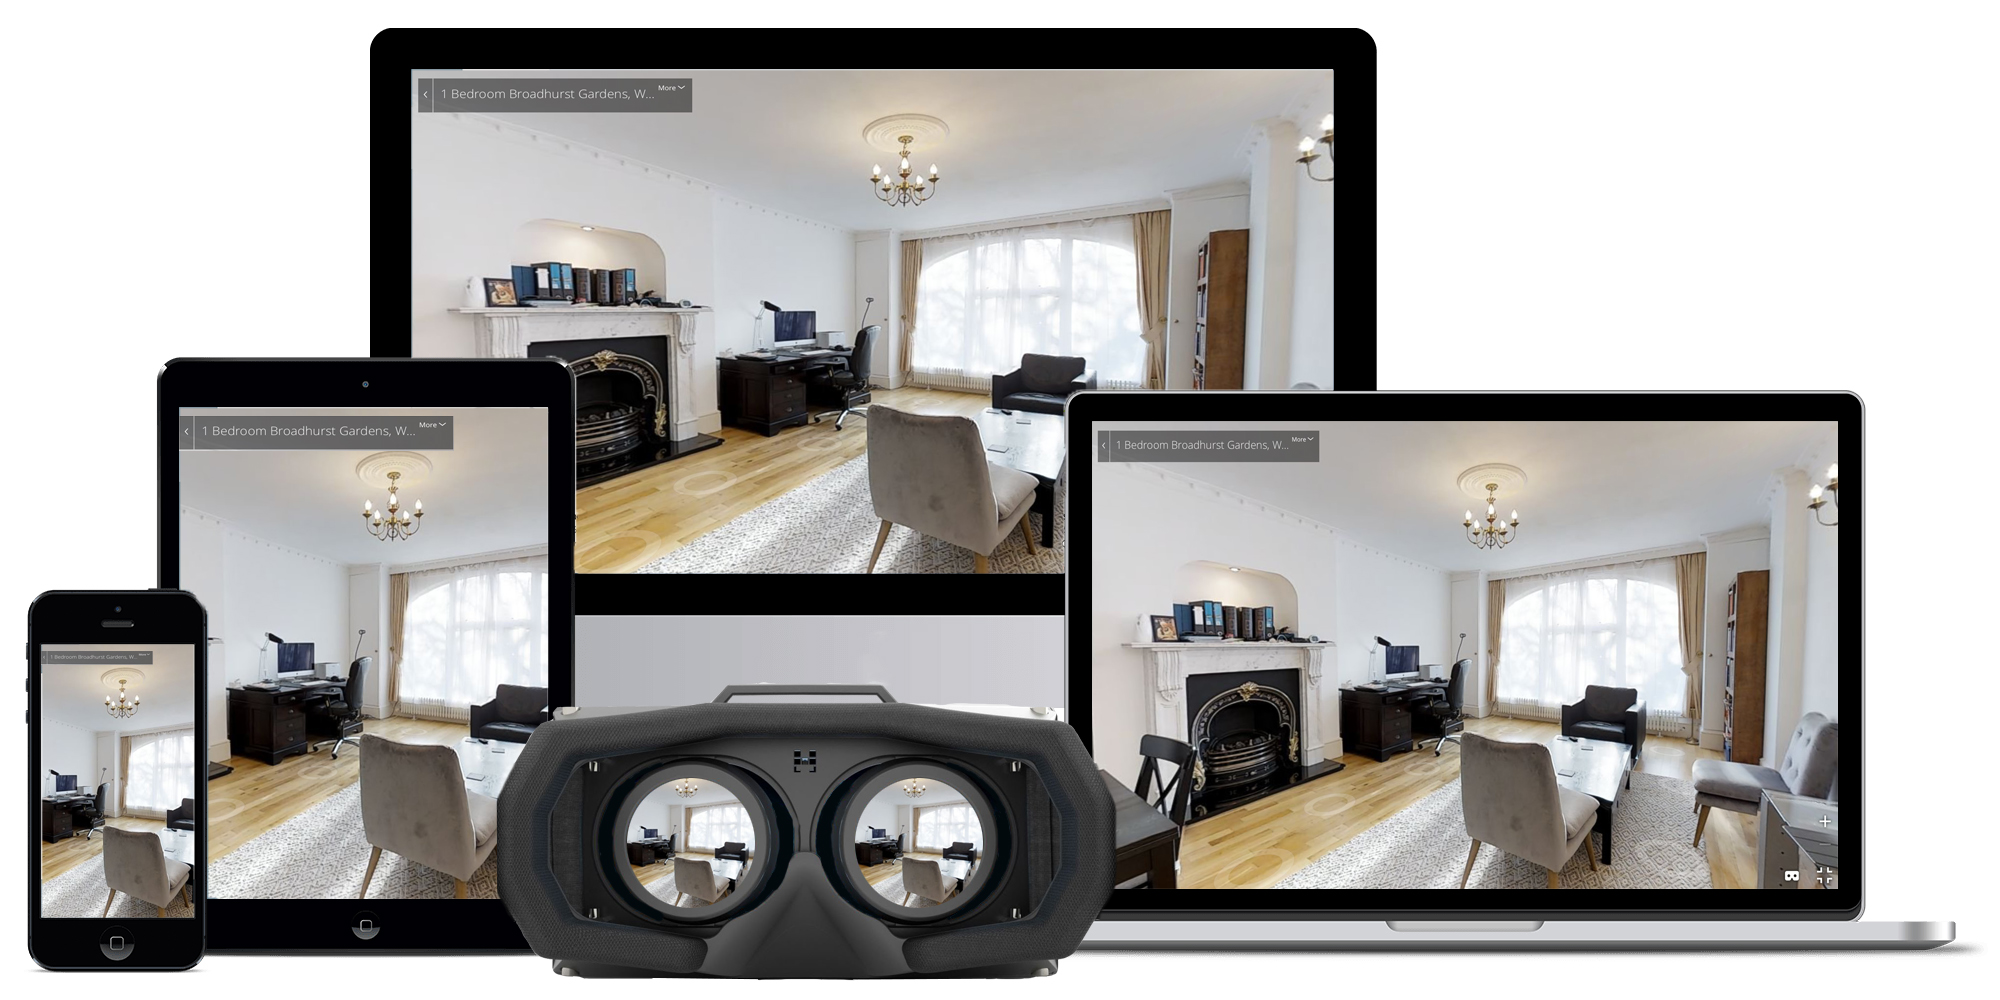 3D Virtual Tours - We use specialised cameras to create Interactive Virtual Tours. Virtual tours give your clients an immersive experience which allows them to navigate their way through a property. It allows them to look around and view the property as if they were actually there.